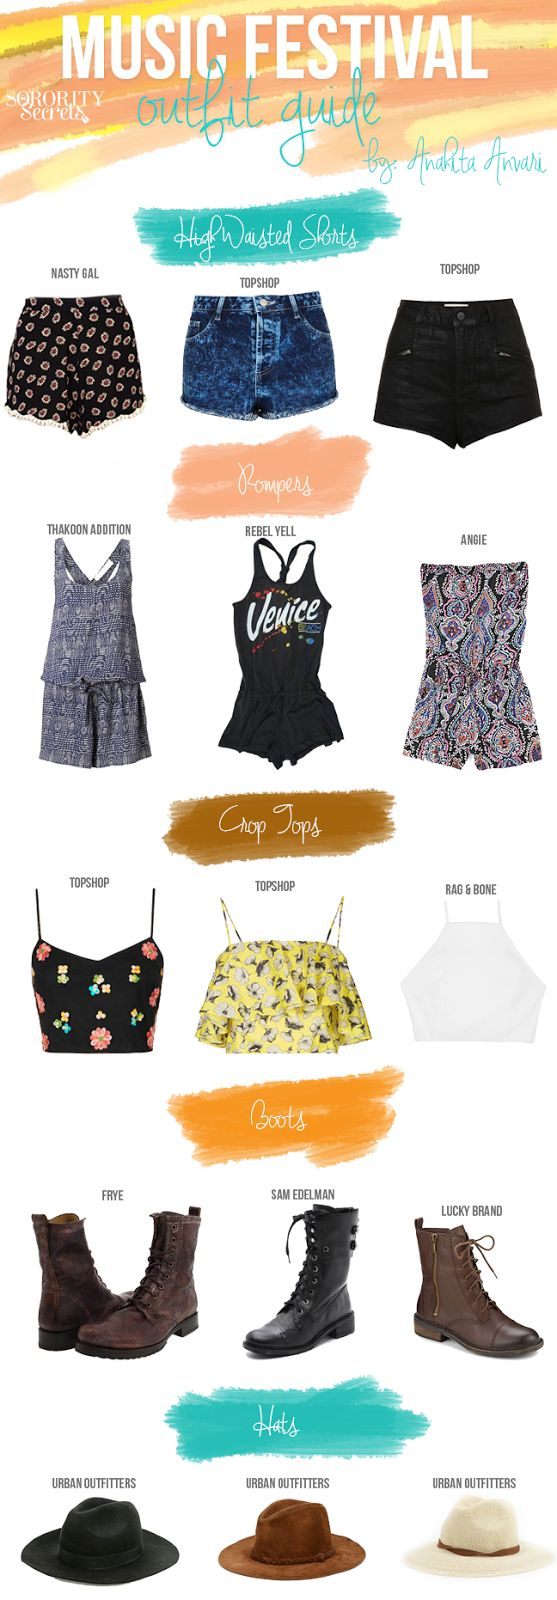 Music Festival Outfit Guide